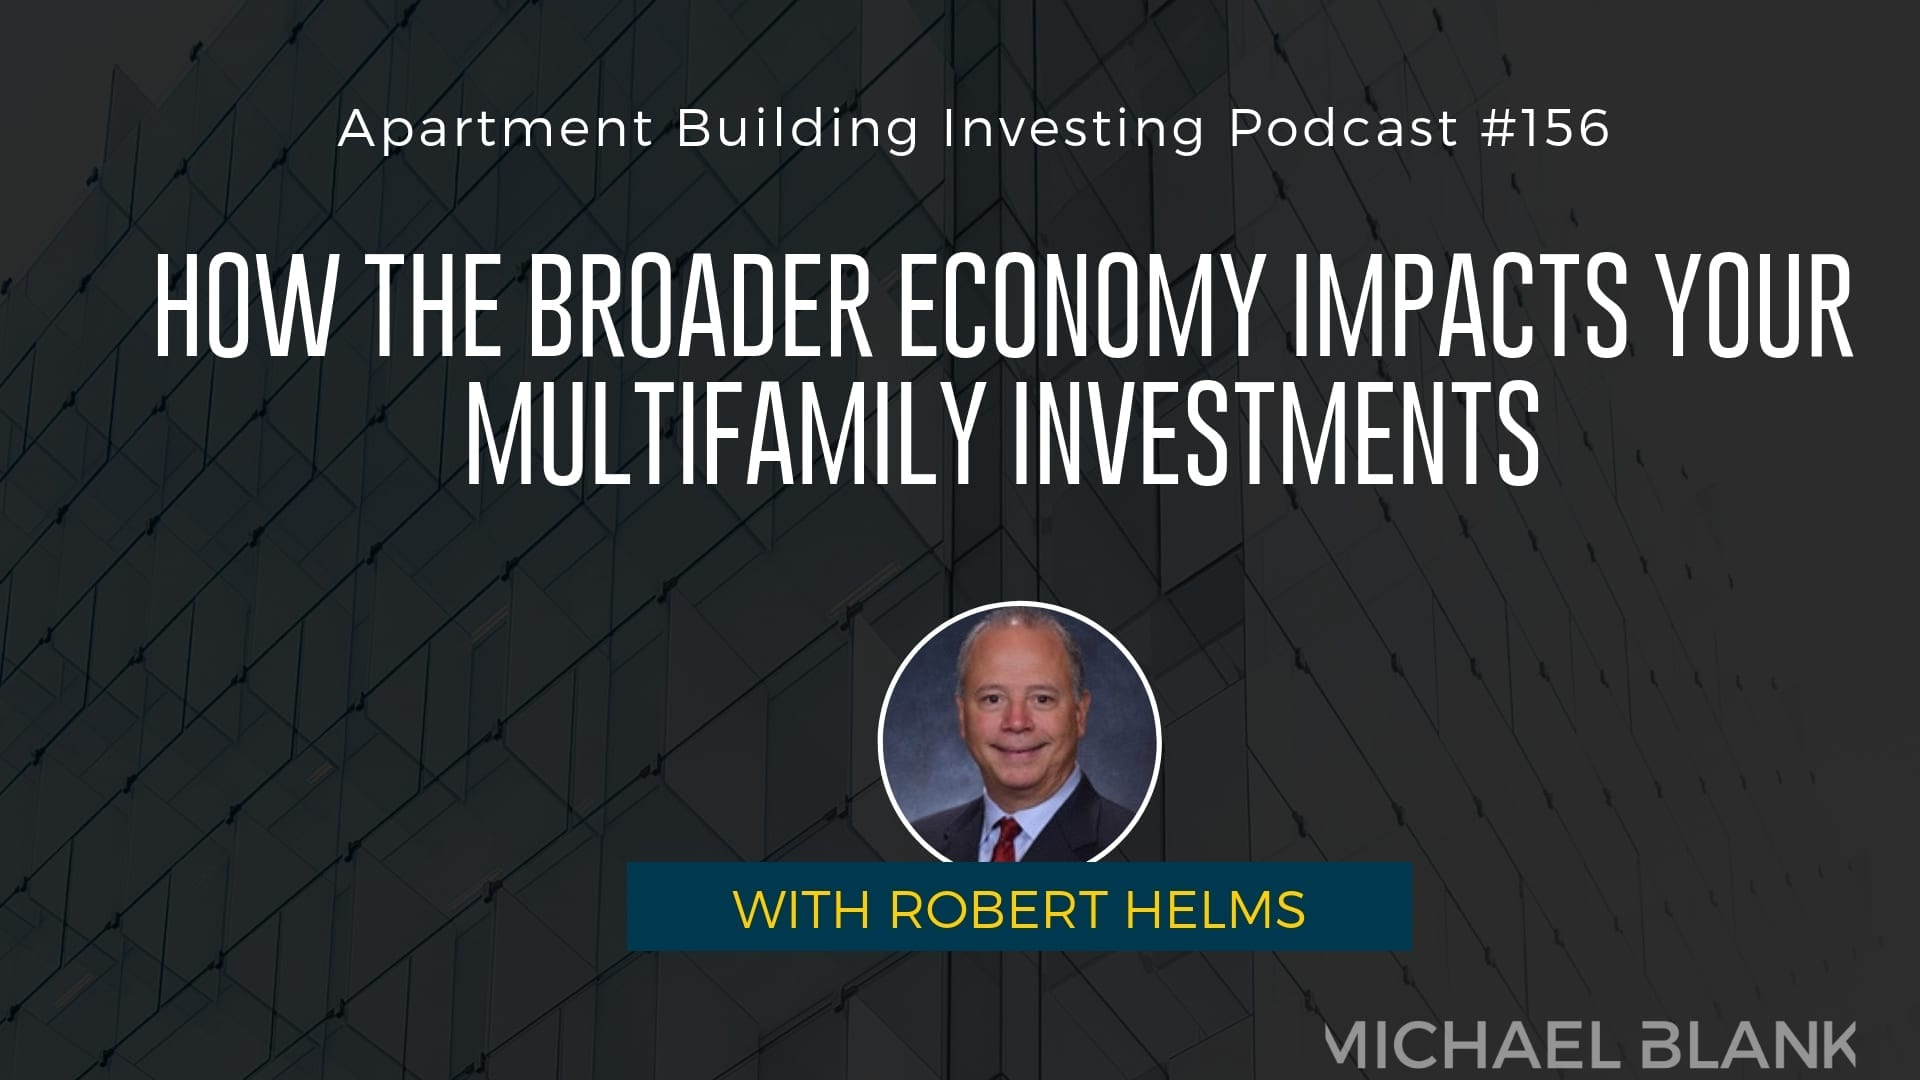 MB 156: How the Broader Economy Impacts Your Multifamily Investments – With Robert Helms